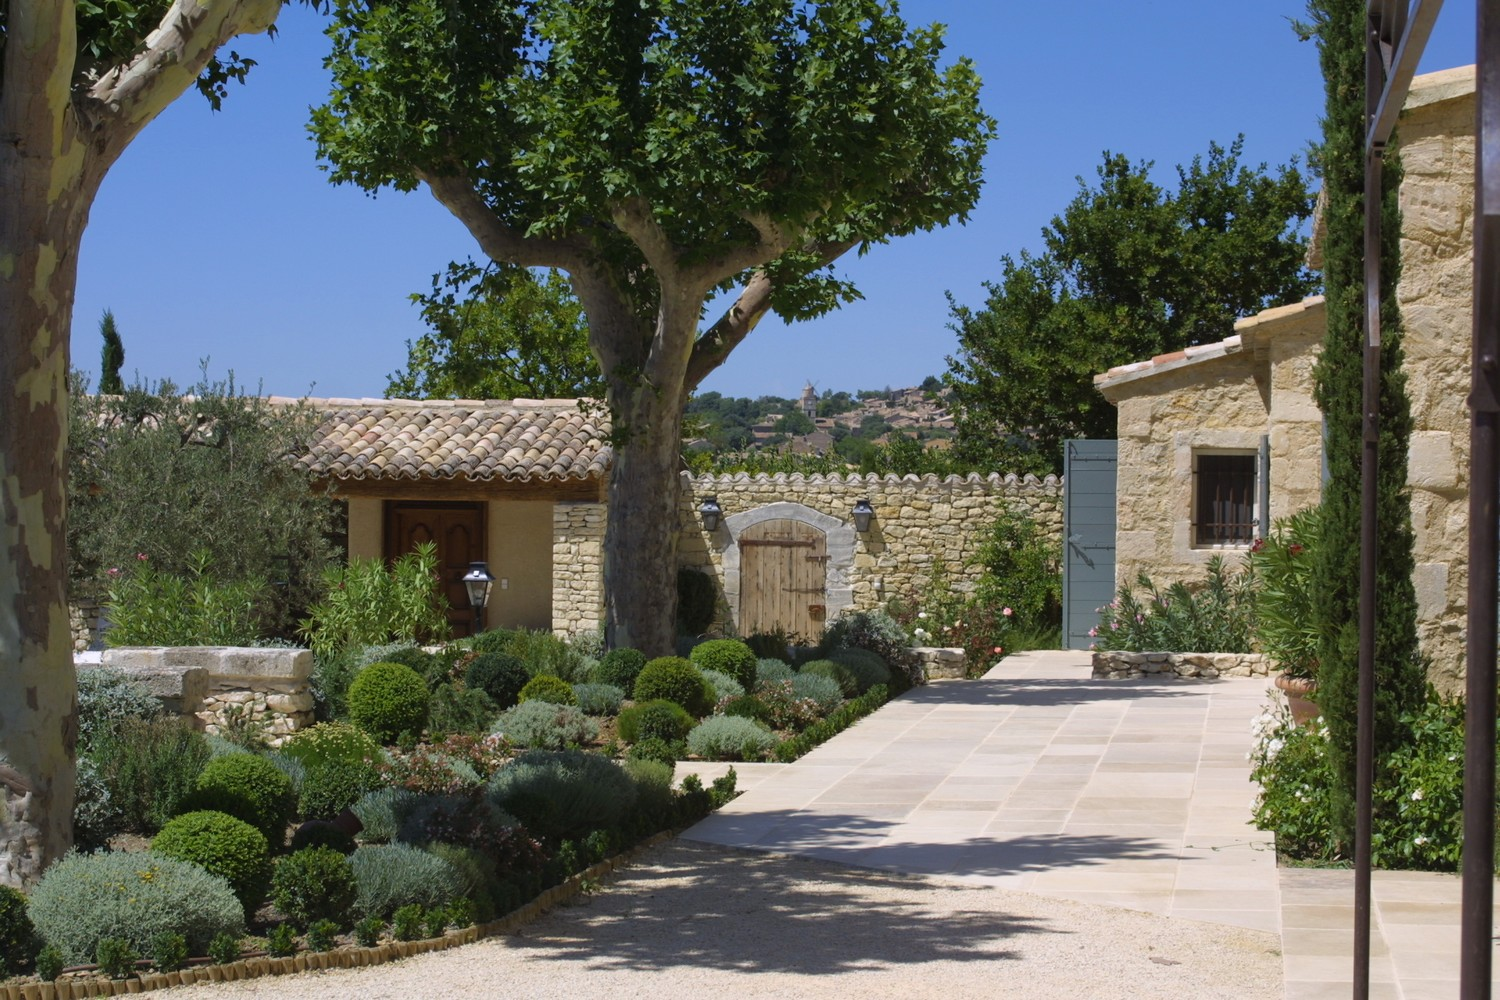 Architect in provence southern france for Landscaping rocks nelson